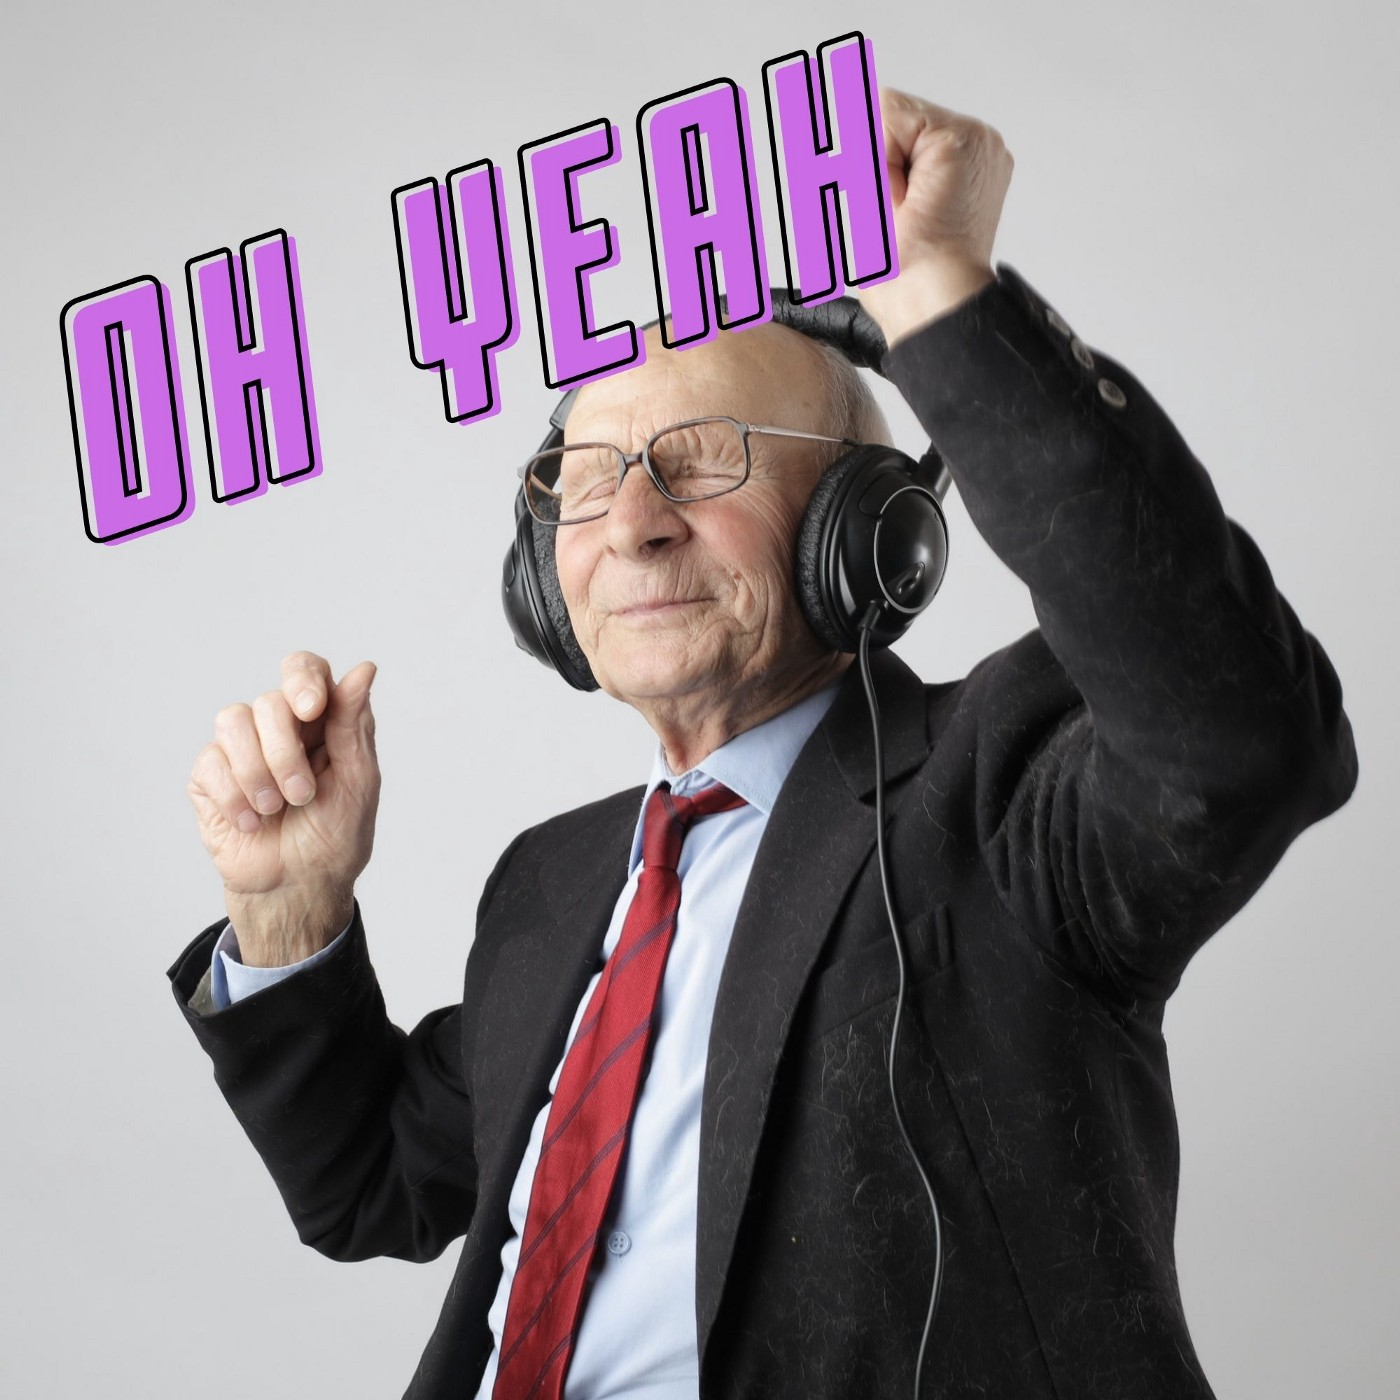 Old man dancing with headphones. Caption say OH YEAH.